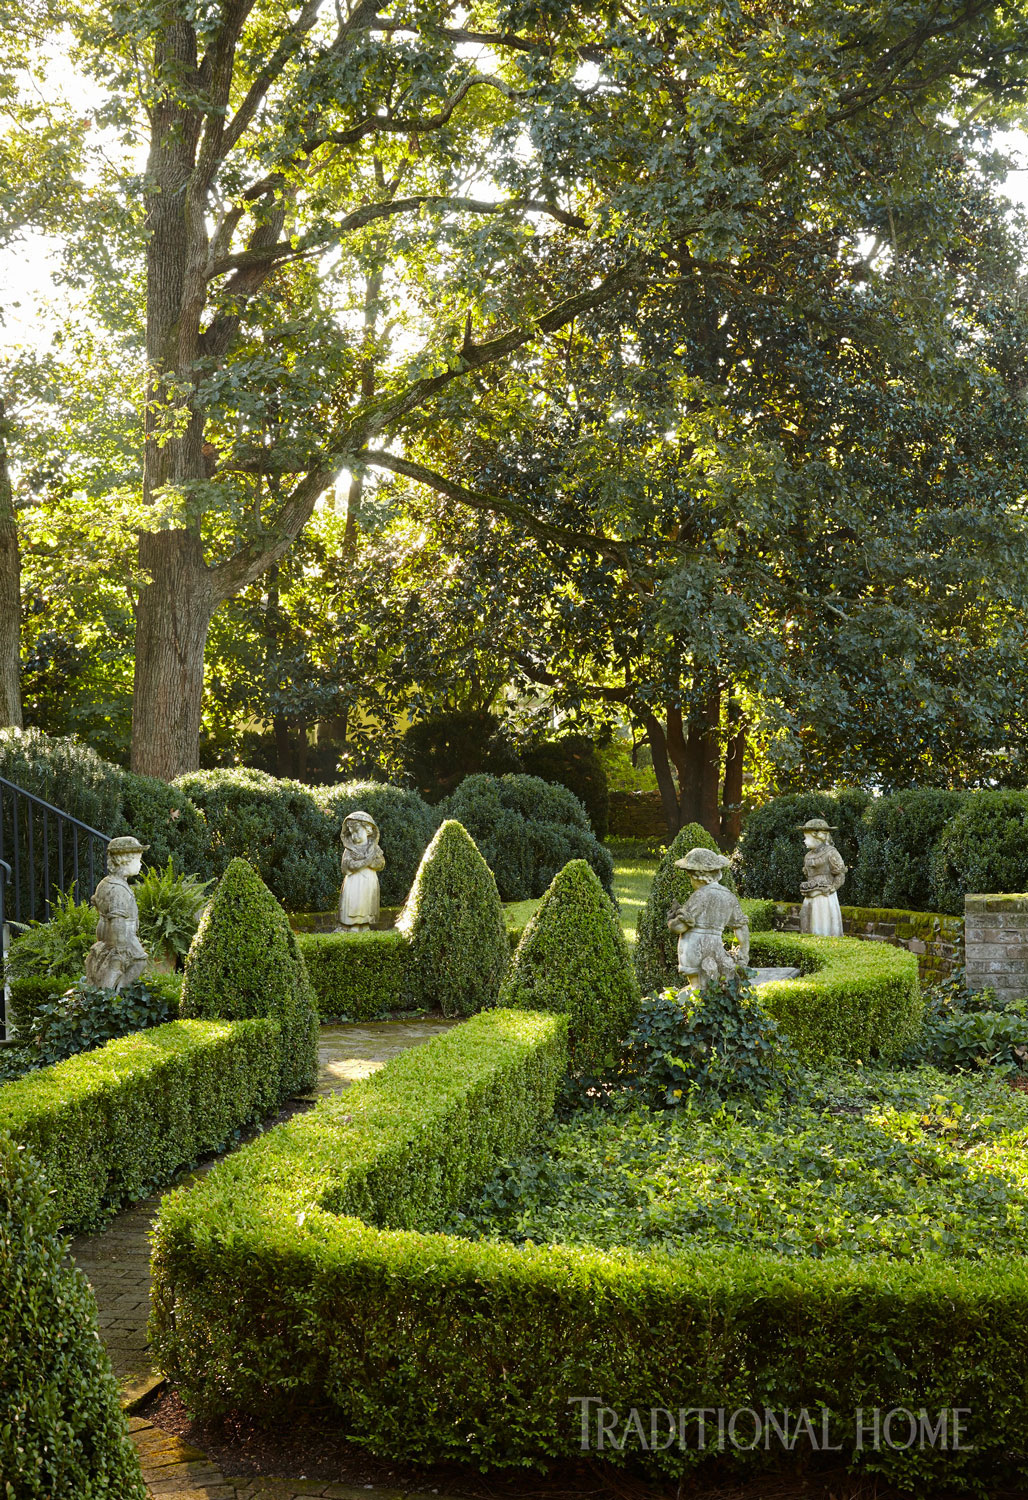 A charming garden path is framed by neatly trimmed boxwood hedges.